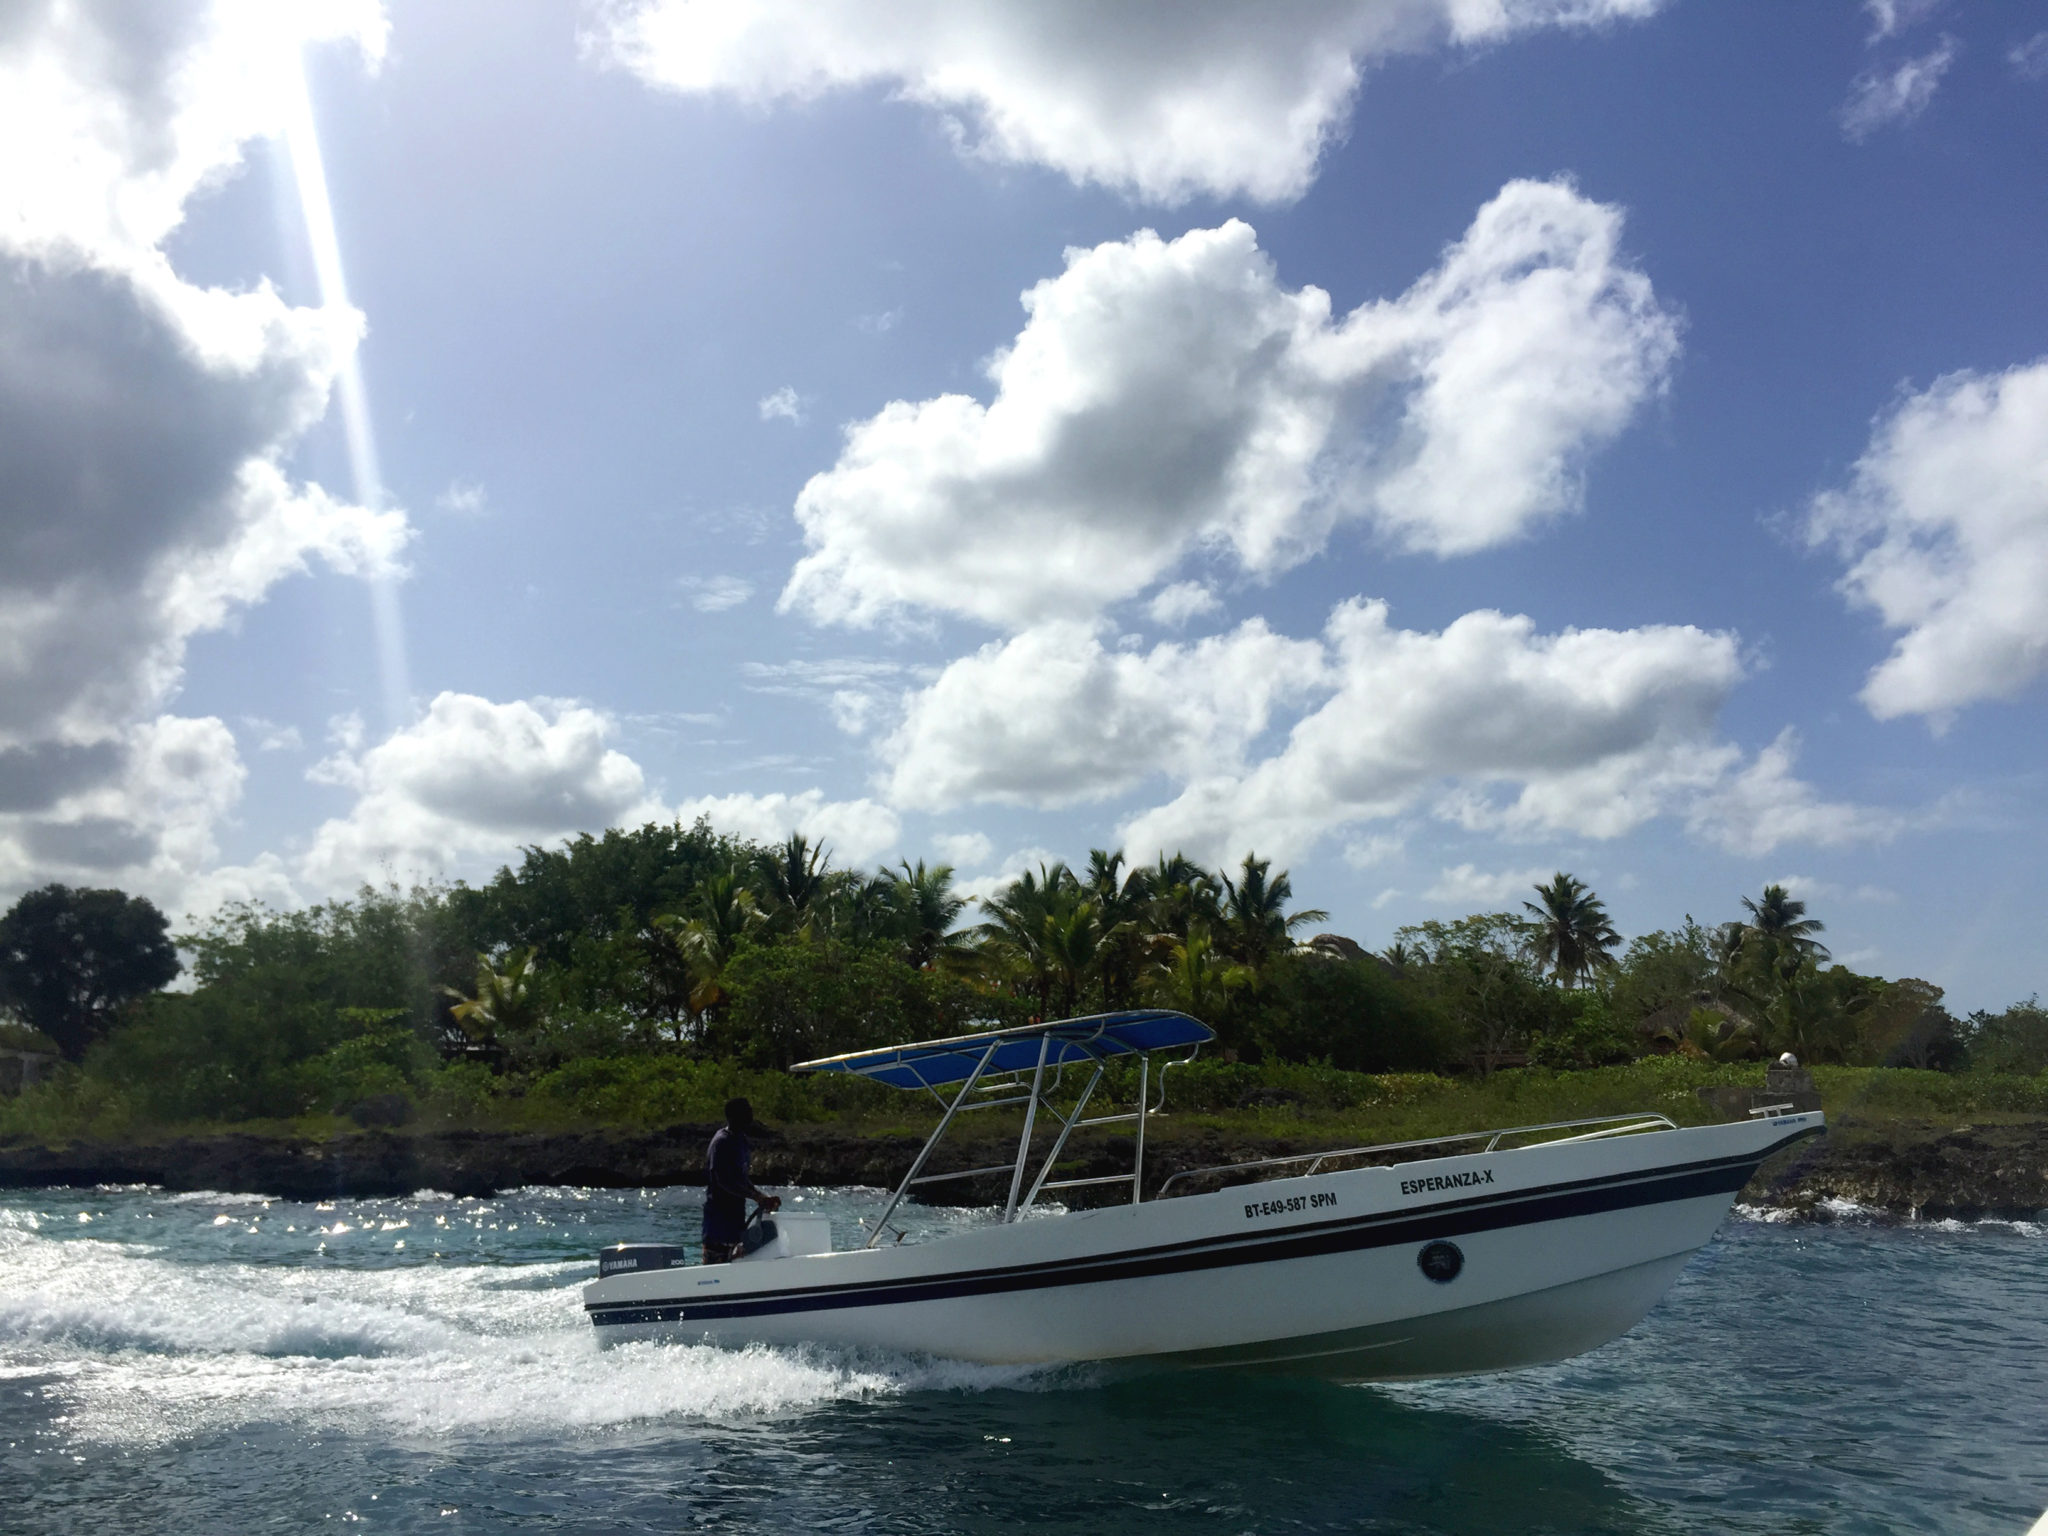 Republique_dominicaine_roadtrip_bayahibe_mer_plongee_bateau